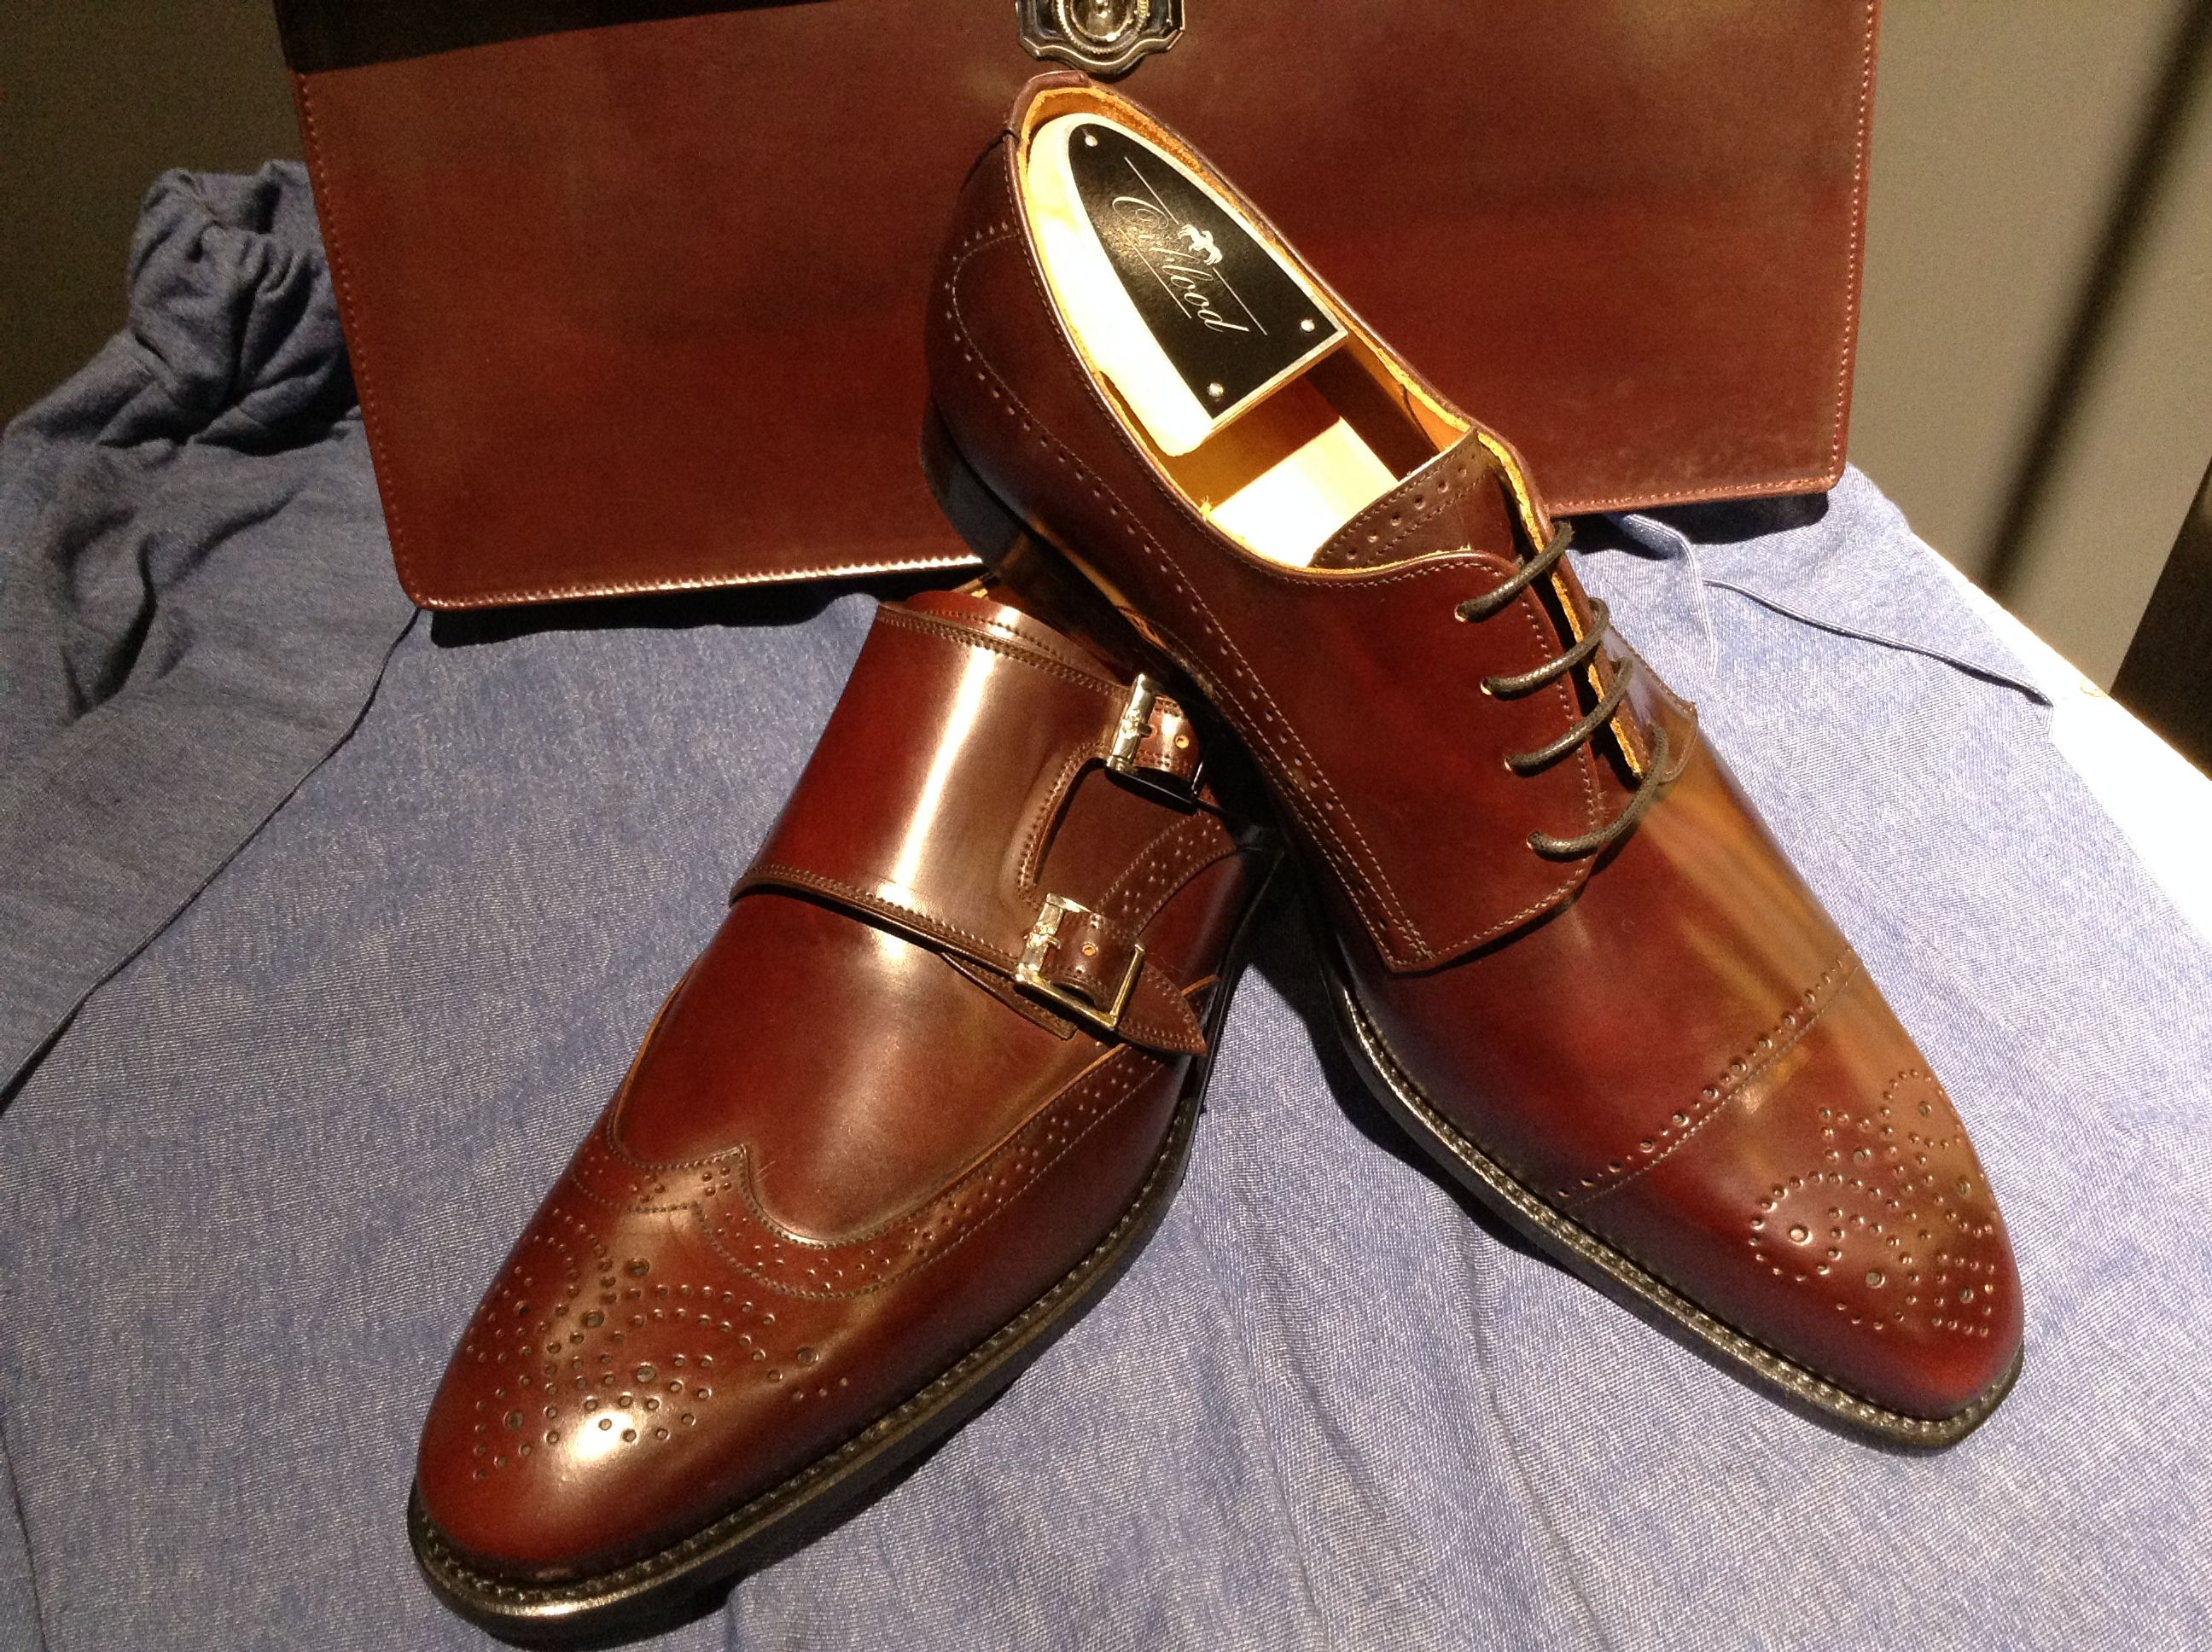 FOOTWEAR - Loafers Cordwainer Good Selling Cheap Price Cheap Sale Really 2018 New Cheap Price Buy Cheap Big Sale Zqa0CppY7